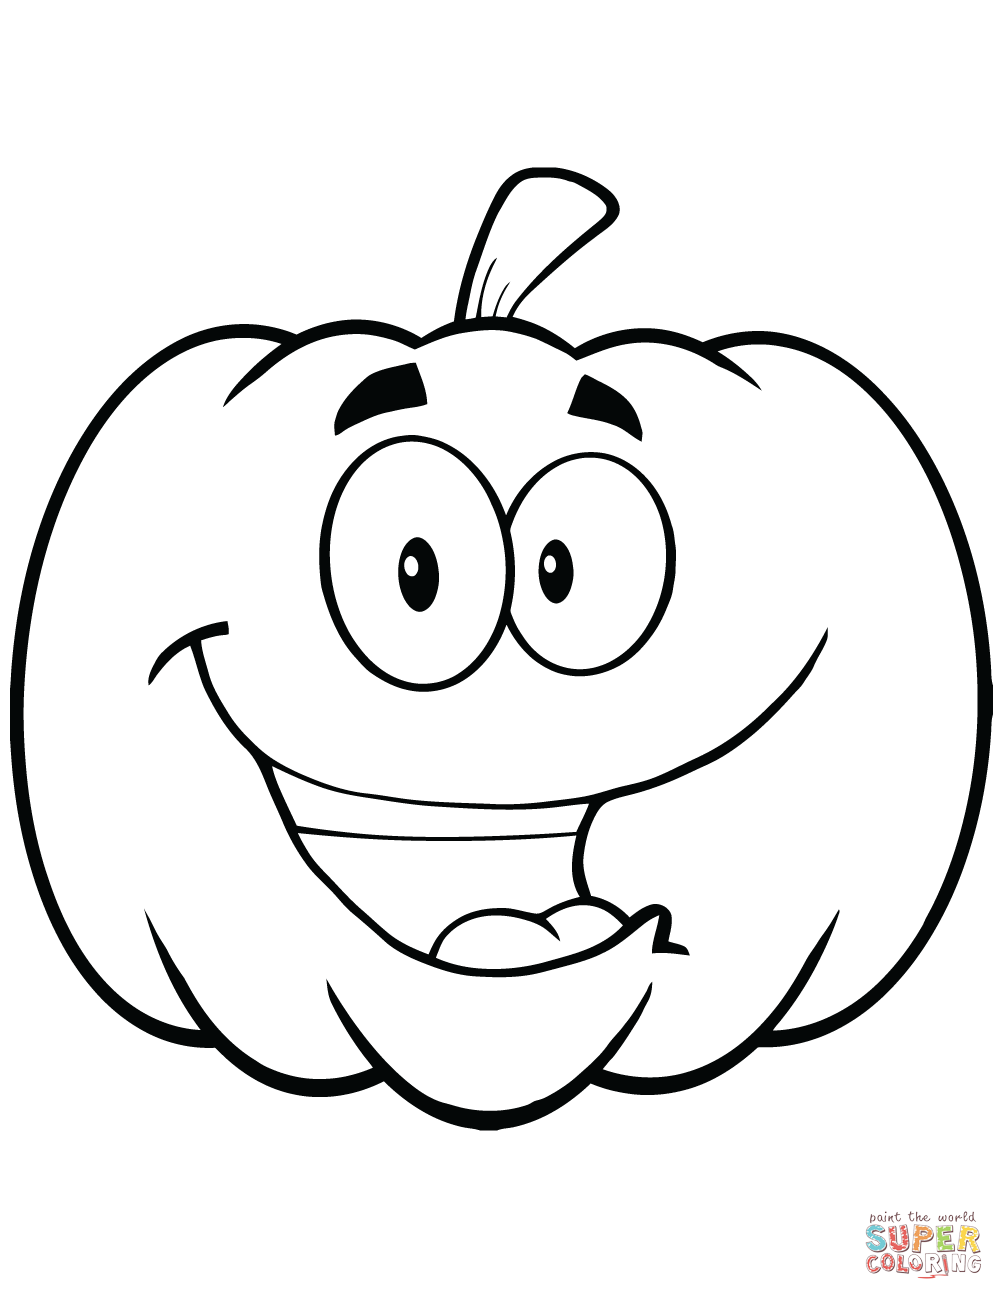 coloring pumpkin cartoon images pumpkin coloring pages getcoloringpagescom images pumpkin cartoon coloring